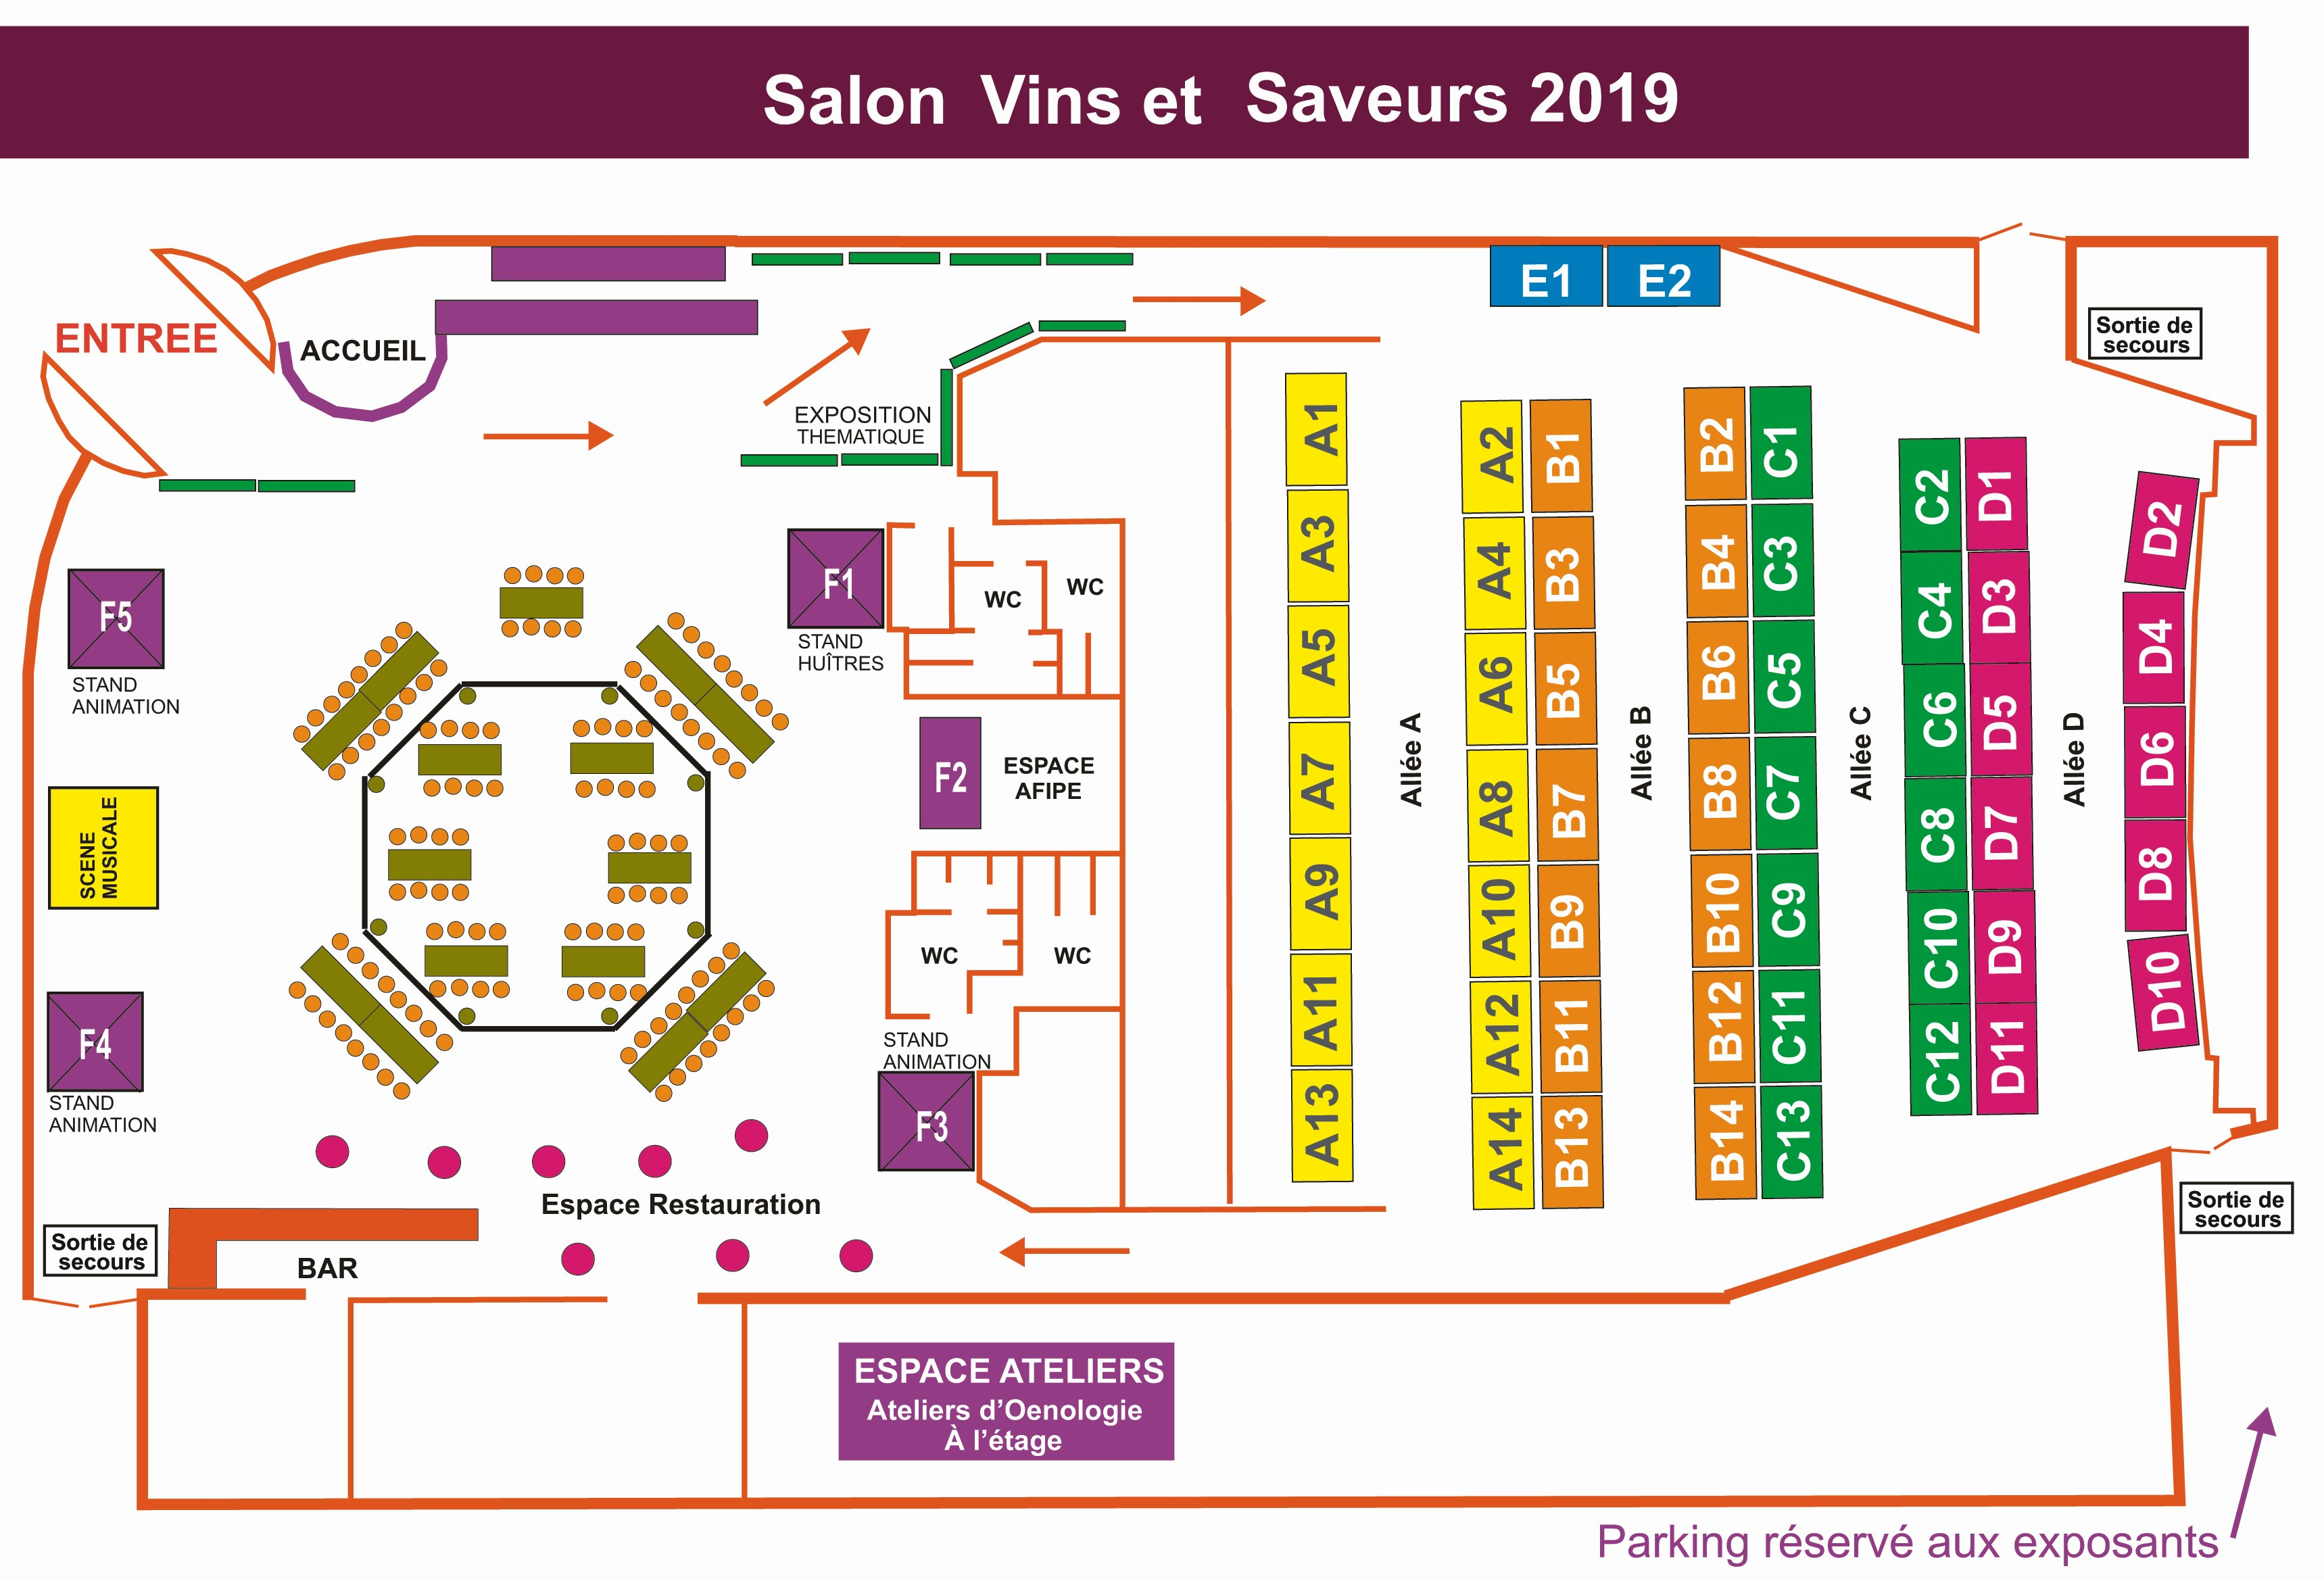 PLAN SALON 2019